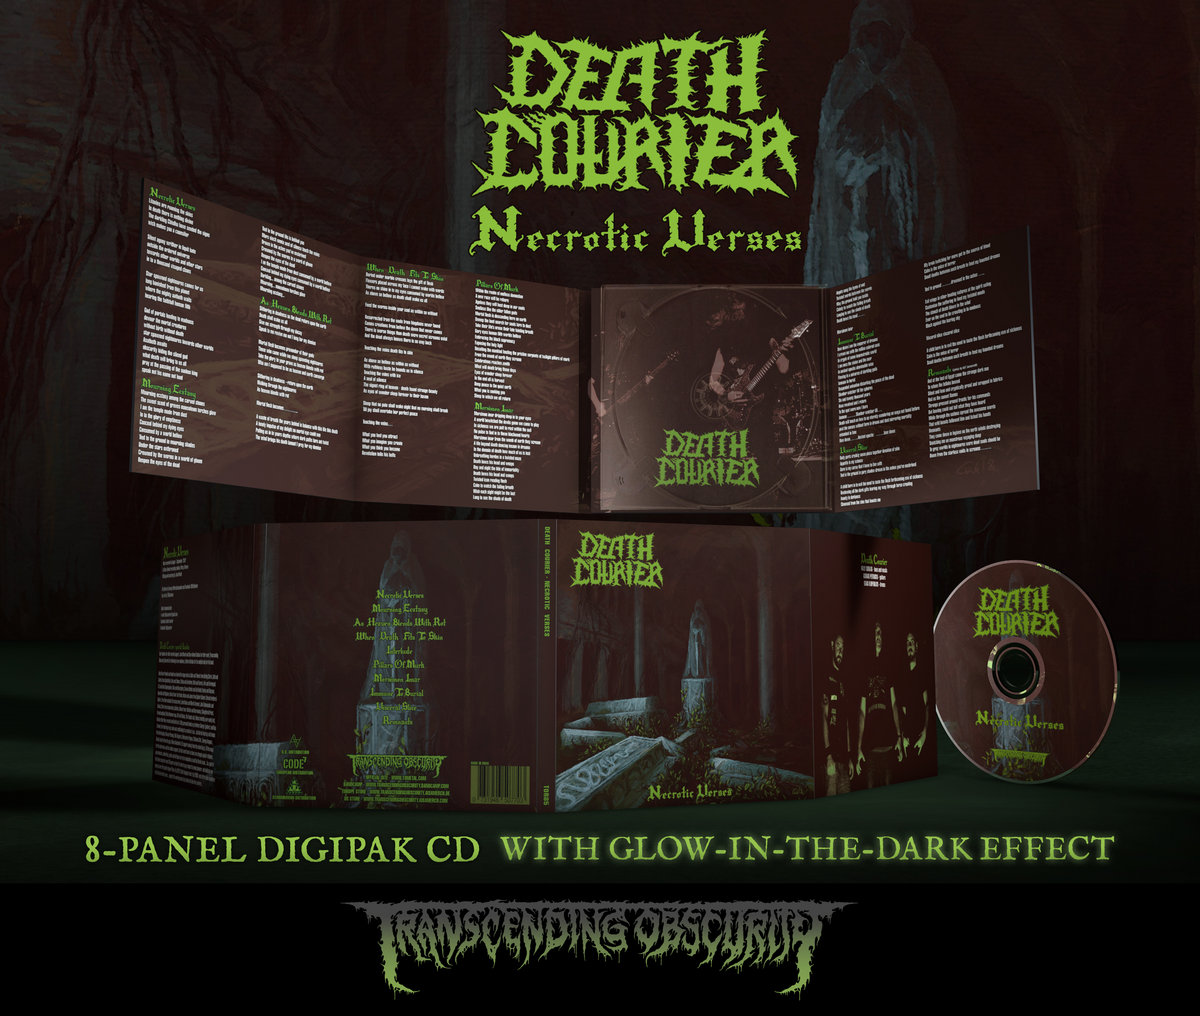 DEATH COURIER (Greece) - Necrotic Verses (Death Metal) Glow-in-the-dark Effect 8-Panel Digipak CD